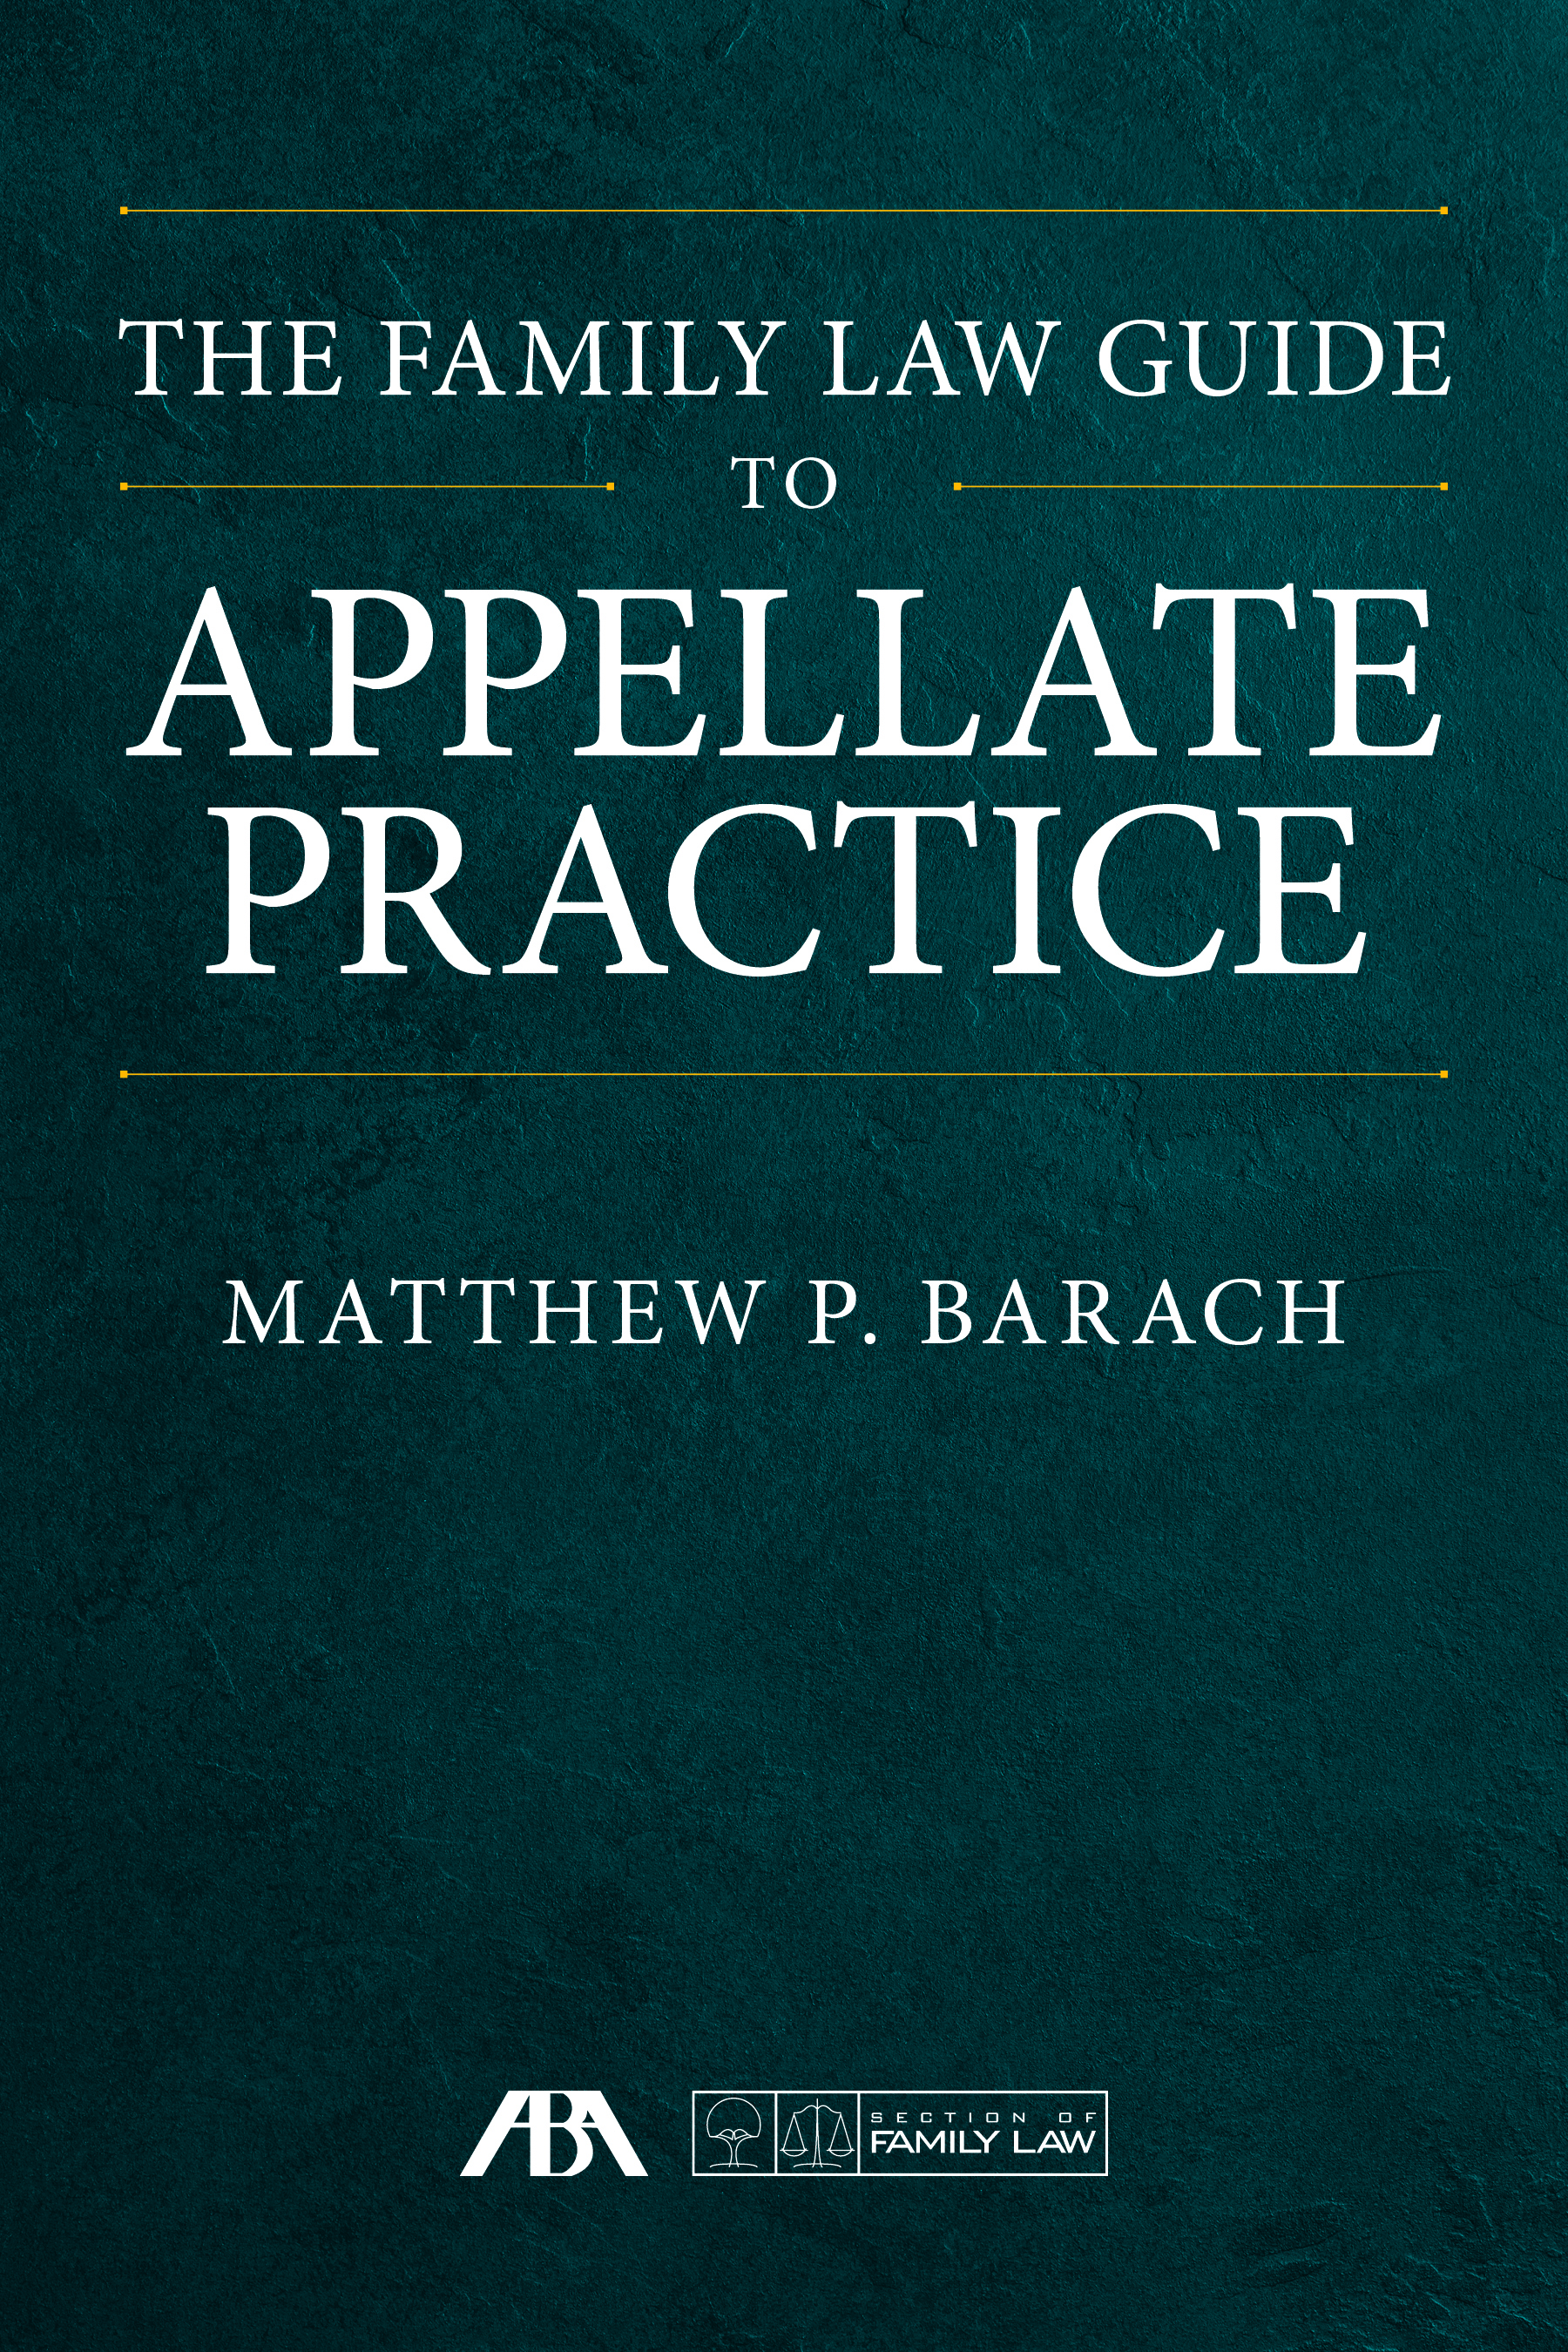 The Family Law Guide to Appellate Practice